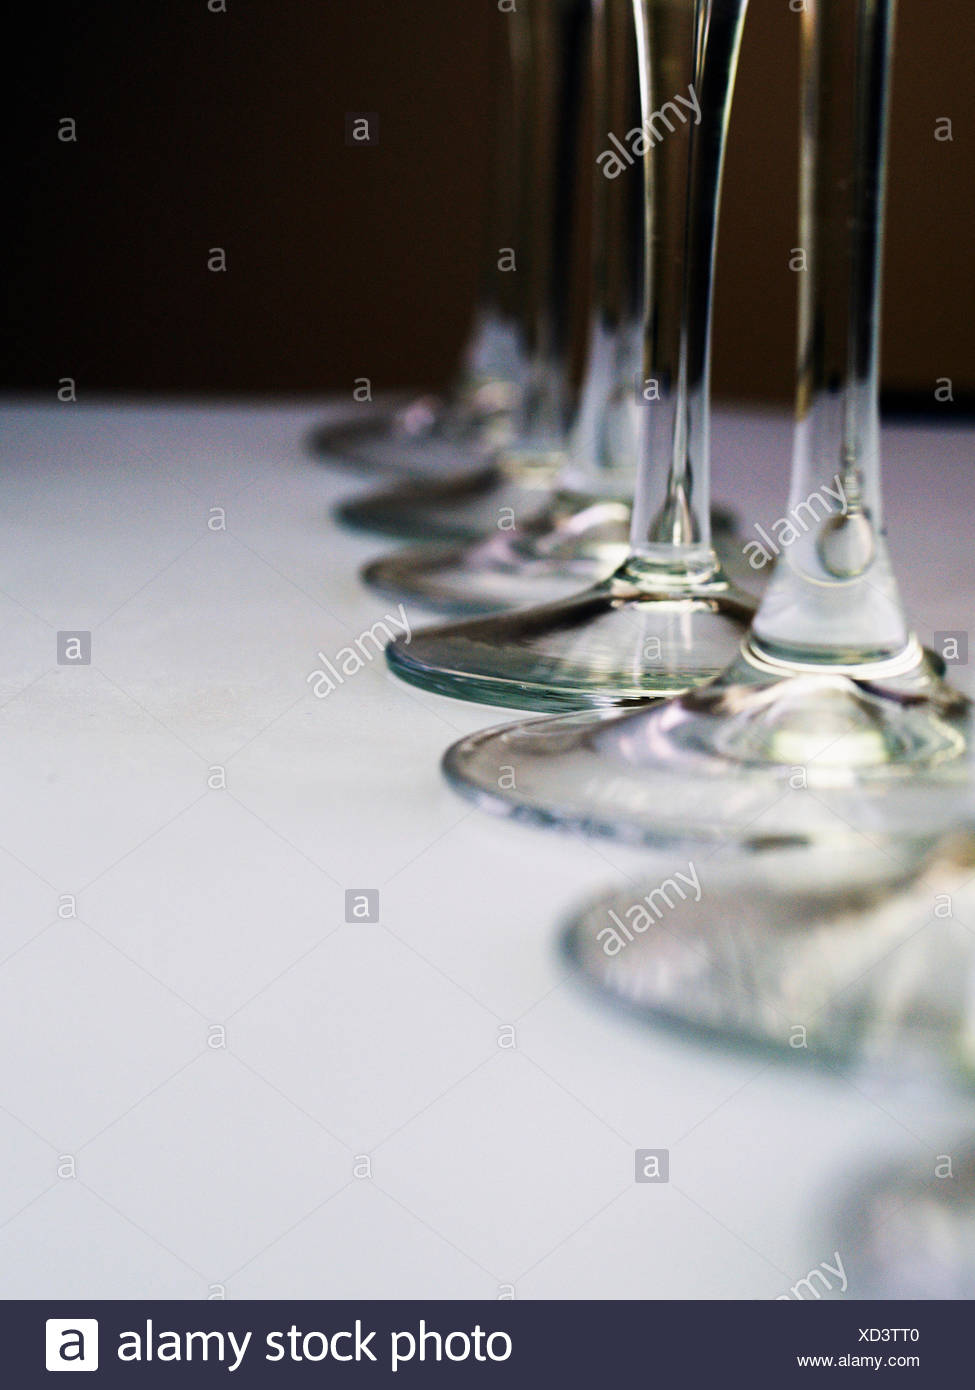 Champagne Flute Stems - Stock Image